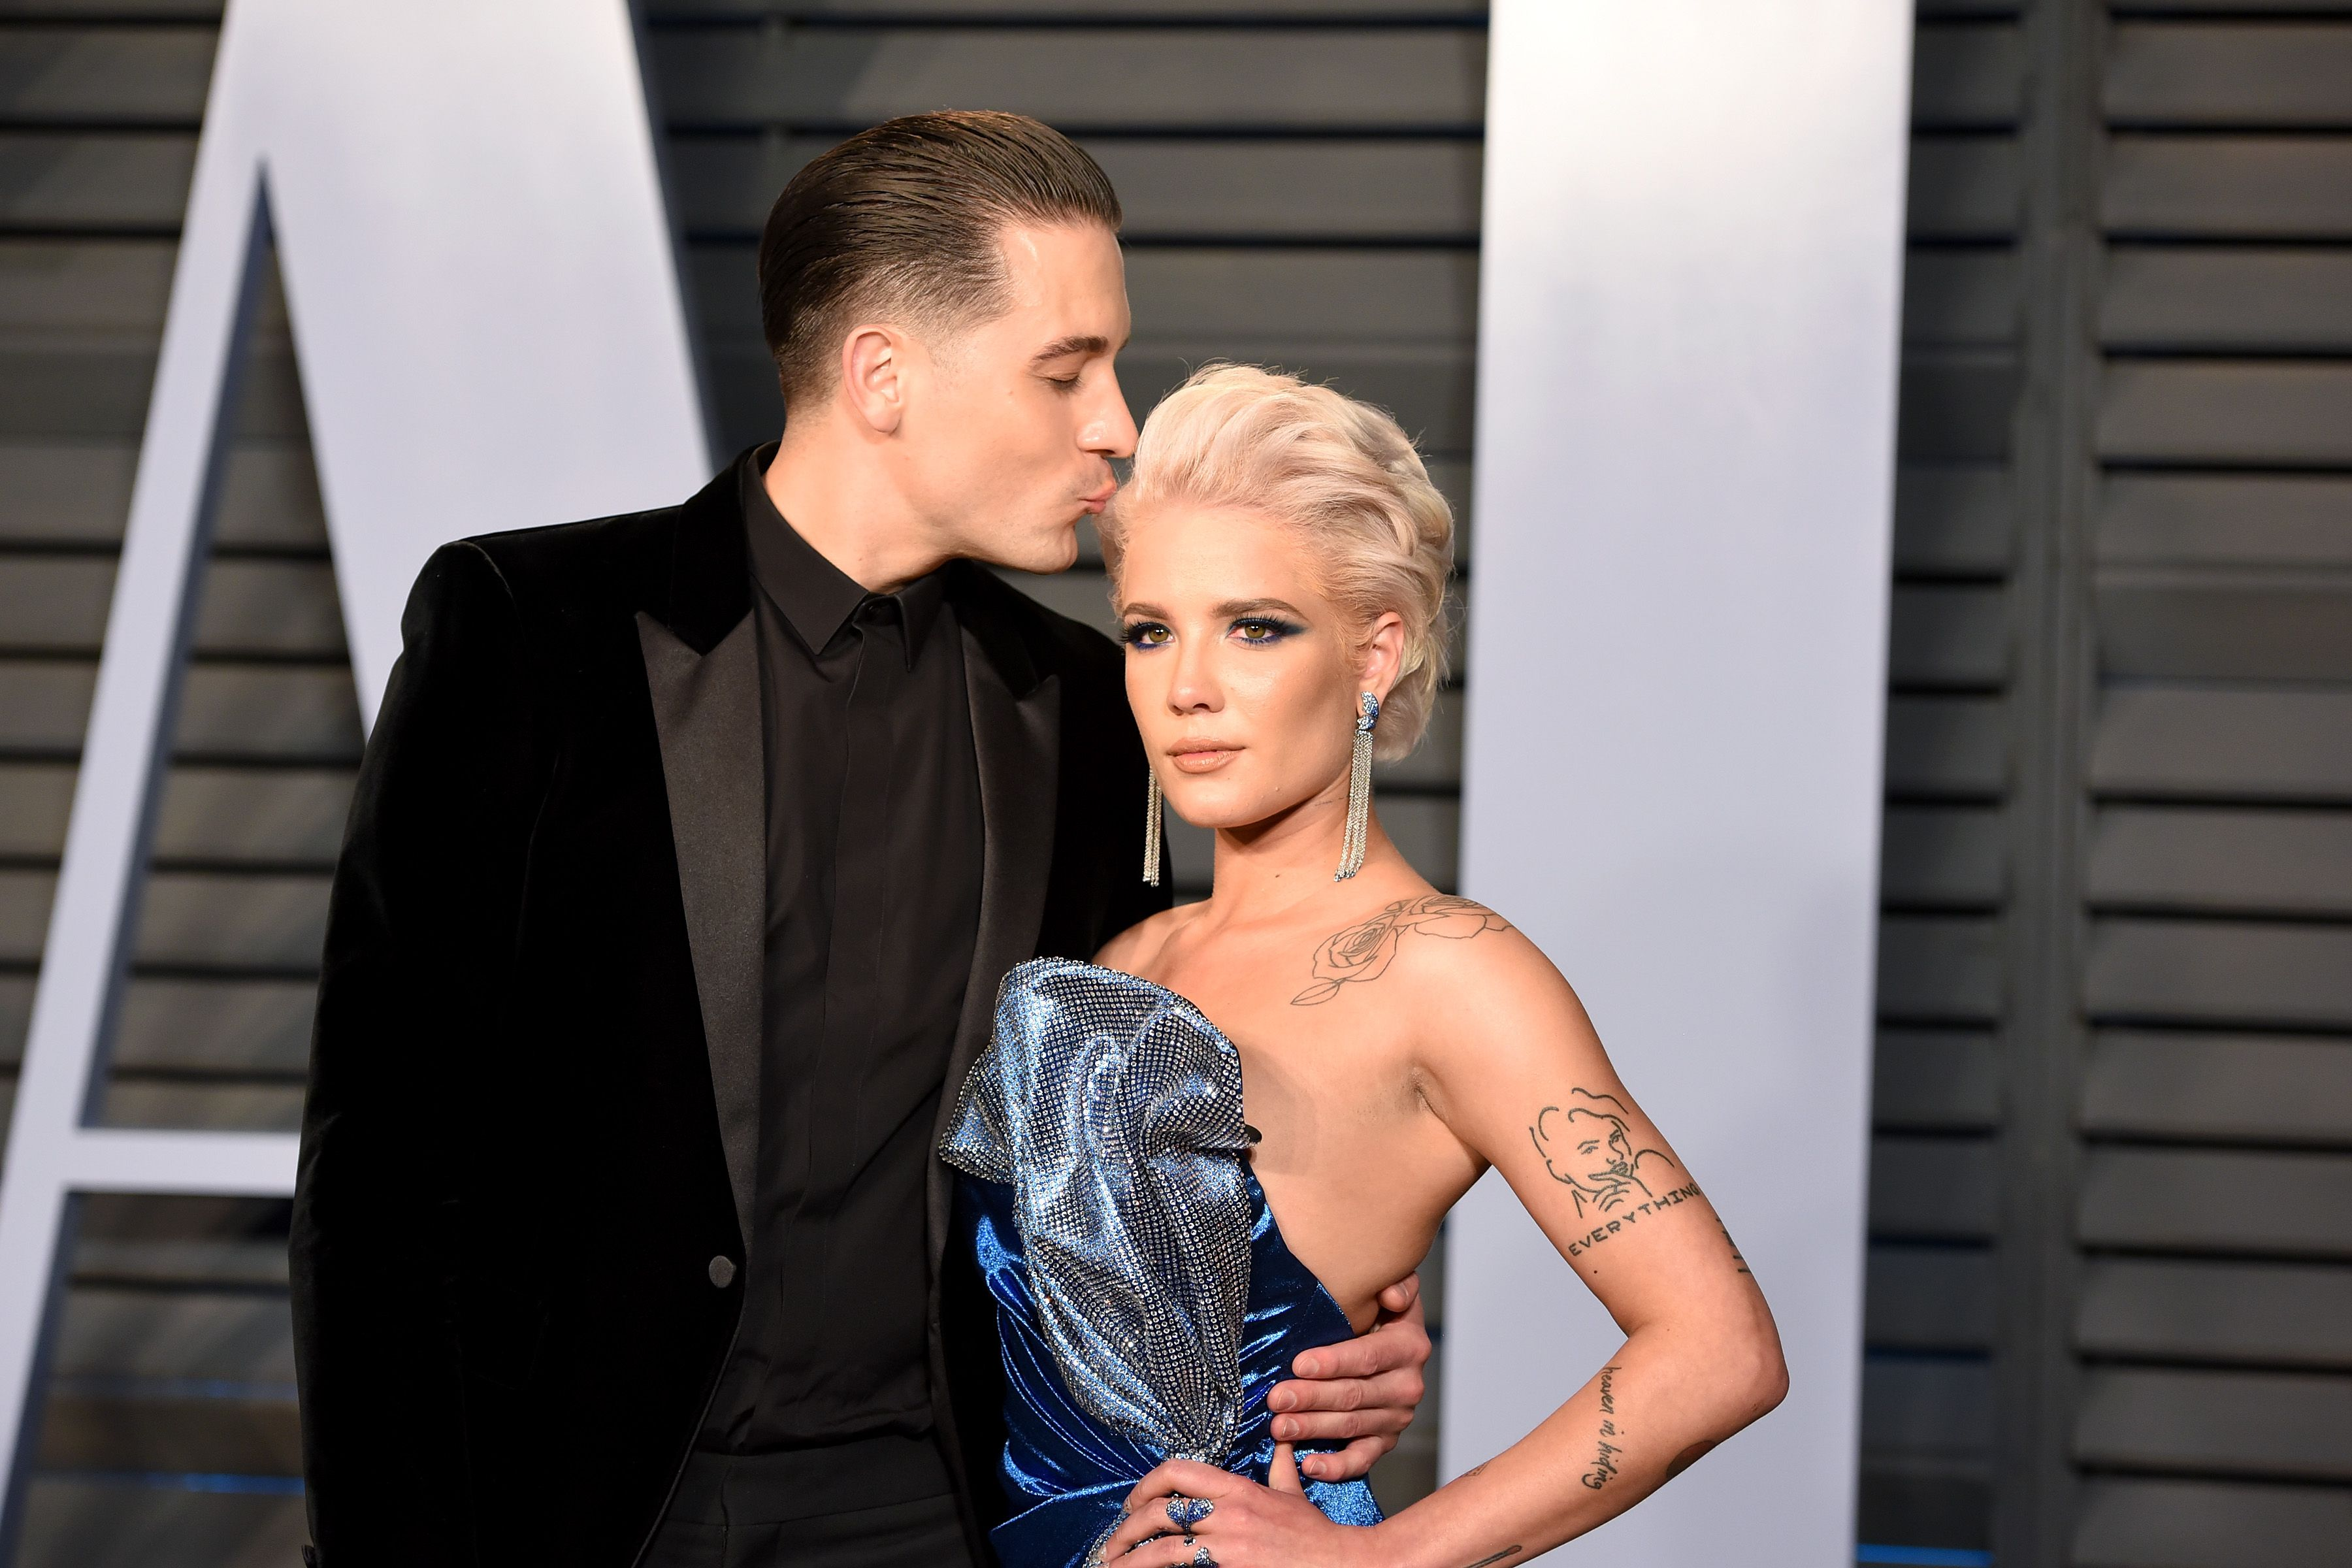 Halsey and G-Eazy's Relationship Timeline -Halsey and G